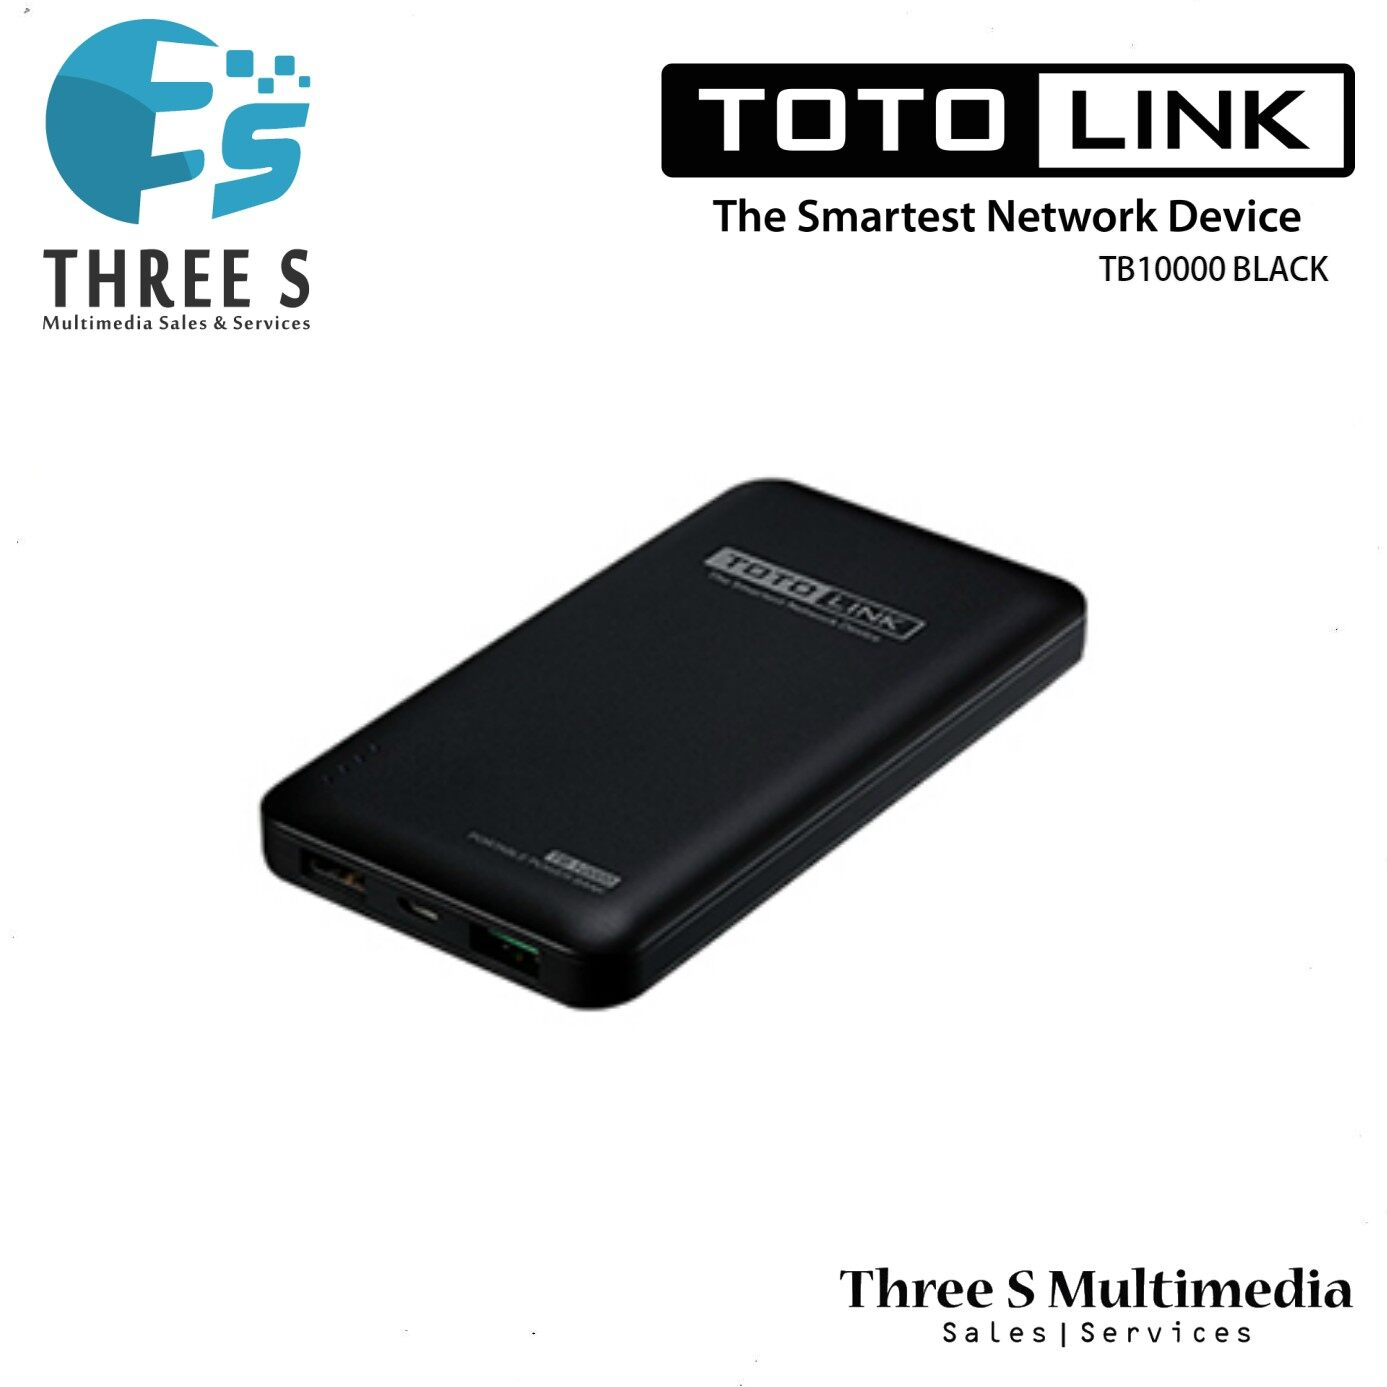 TOTO LINK 10000mAh Power Bank TB10000